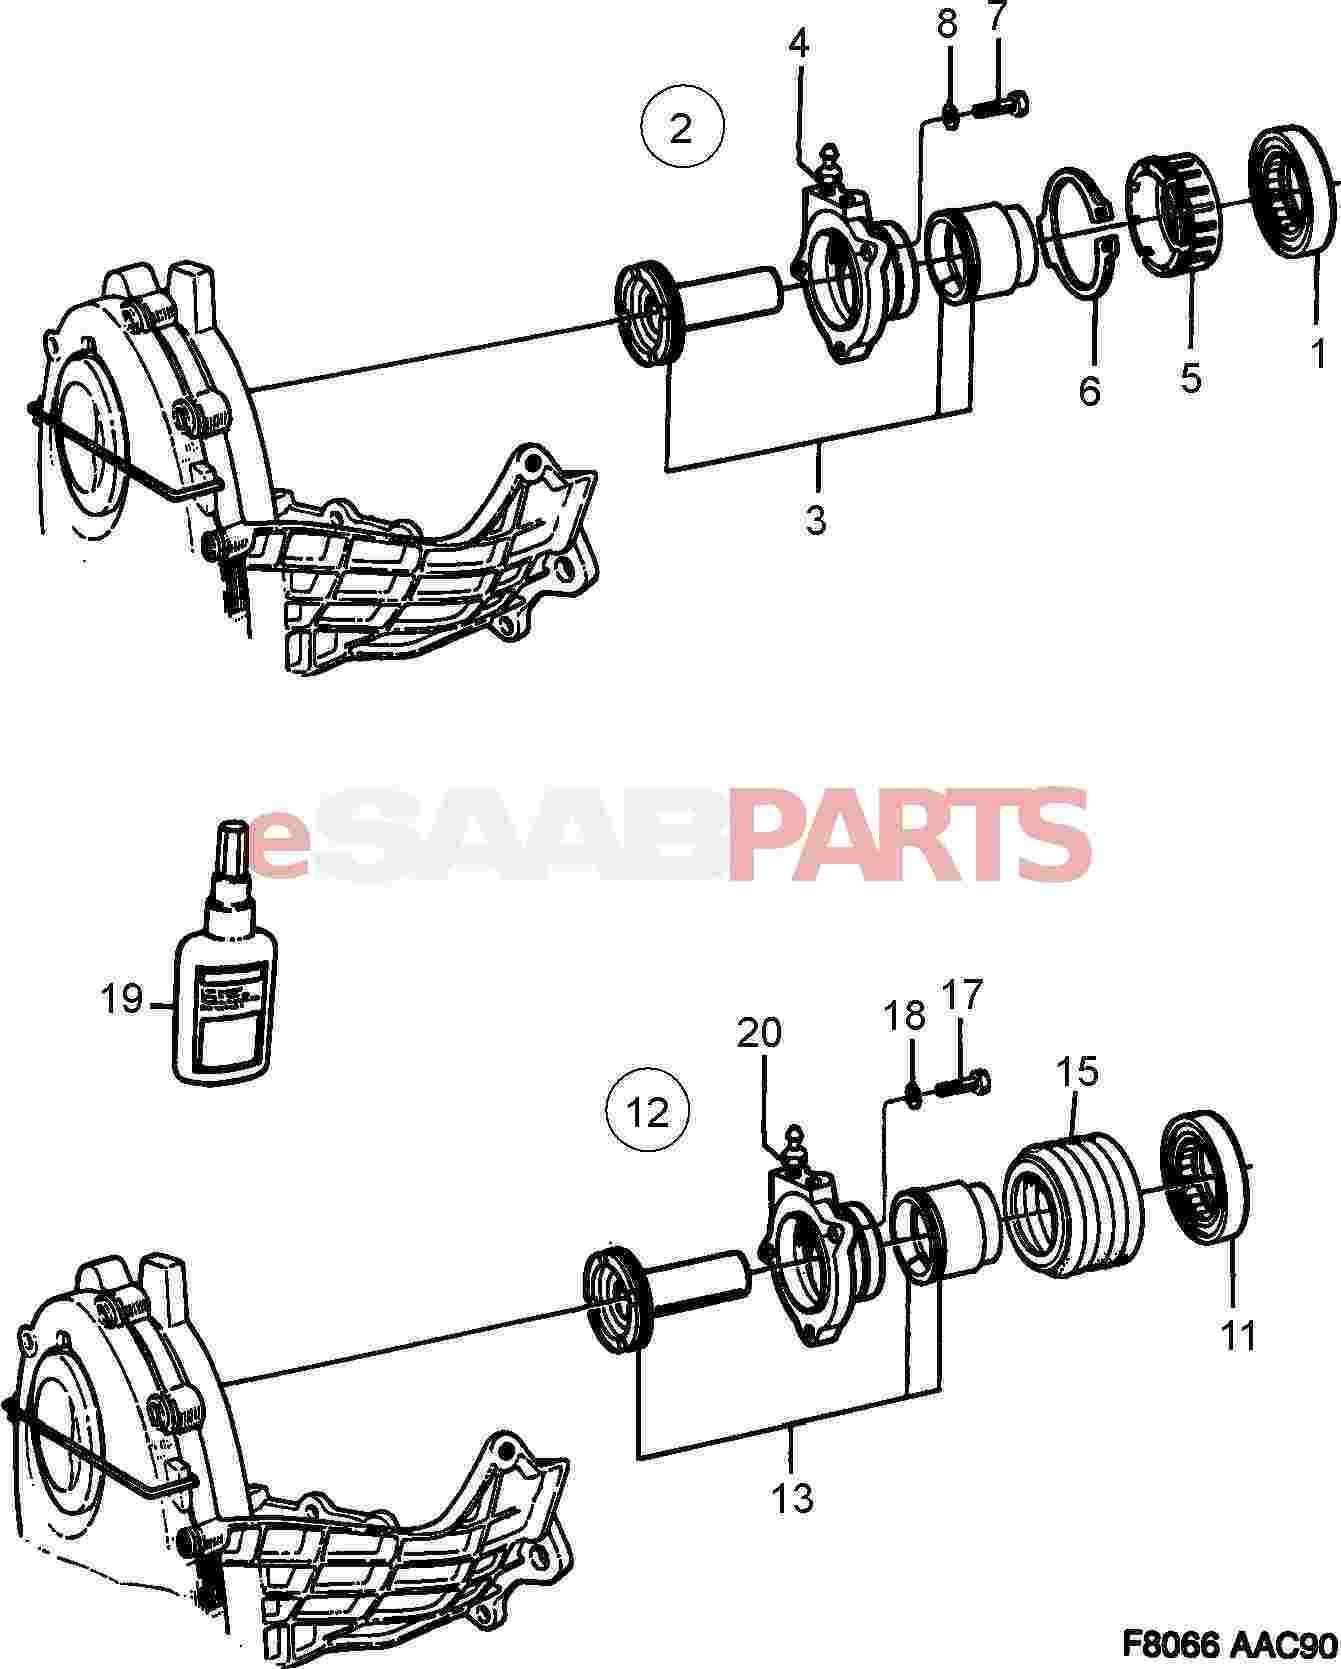 saab 900s parts diagram shifter automatic  saab  auto